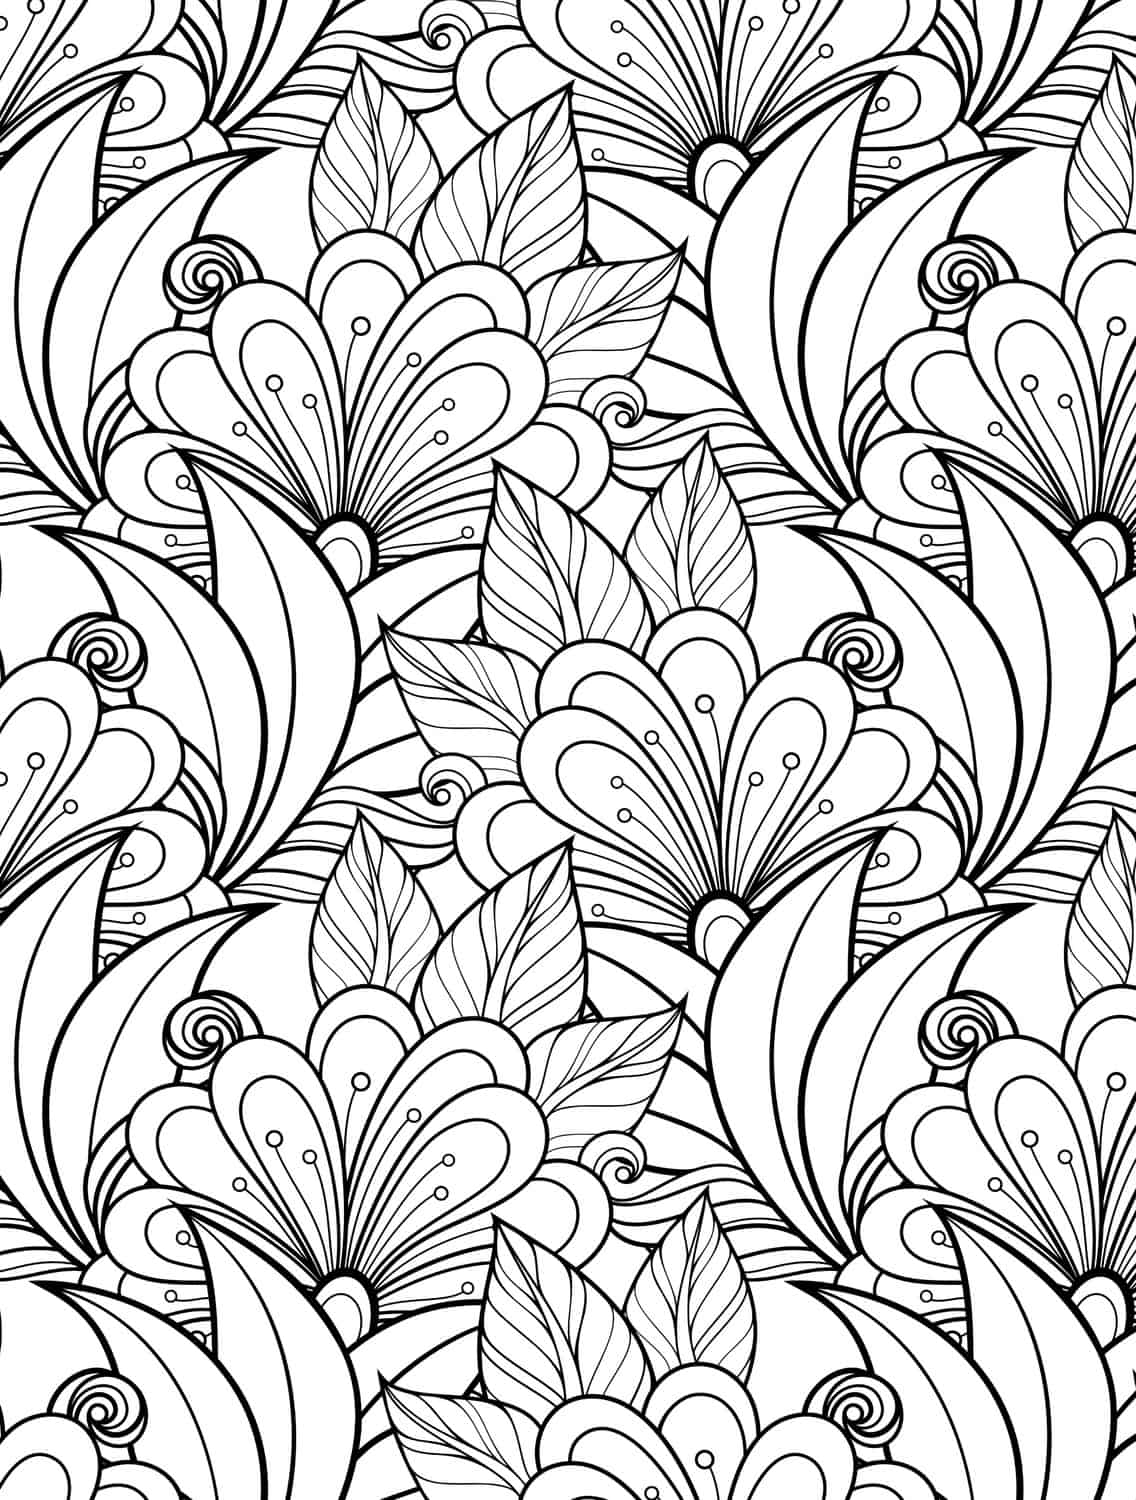 24 more free printable coloring pages page 7 of 25 nerdy